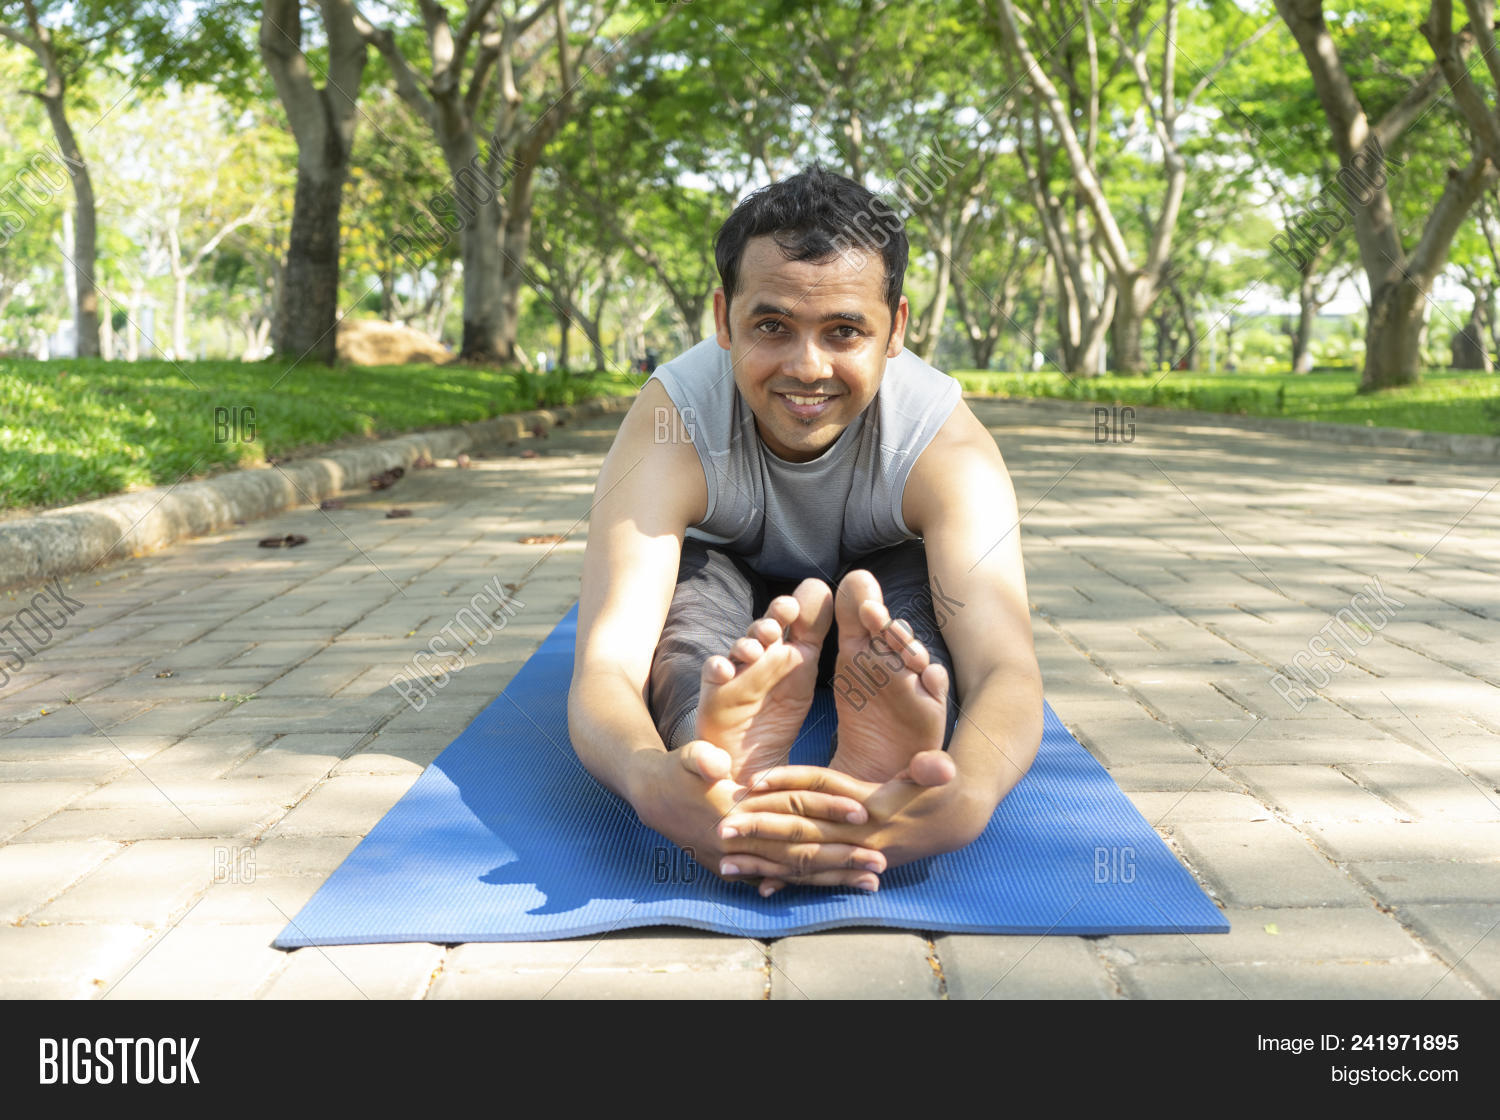 Smiling Young Indian Man Doing Seated Forward Bend Outdoors On Mat In Park With Trees In Background 241971895 Image Stock Photo